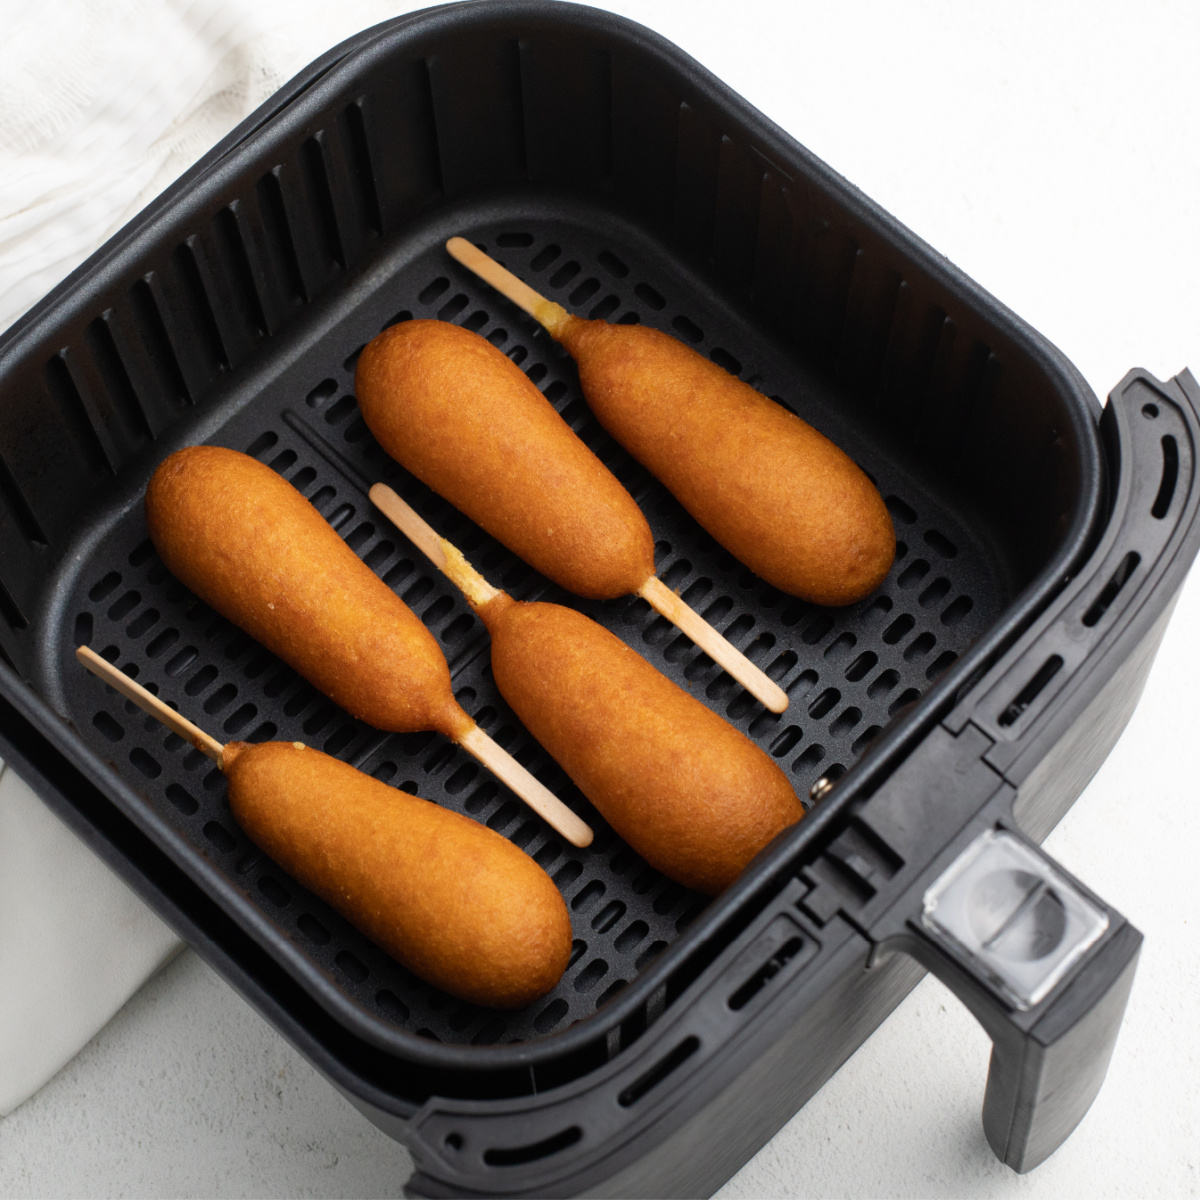 Corn dogs in a single layer in an Air Fryer basket.